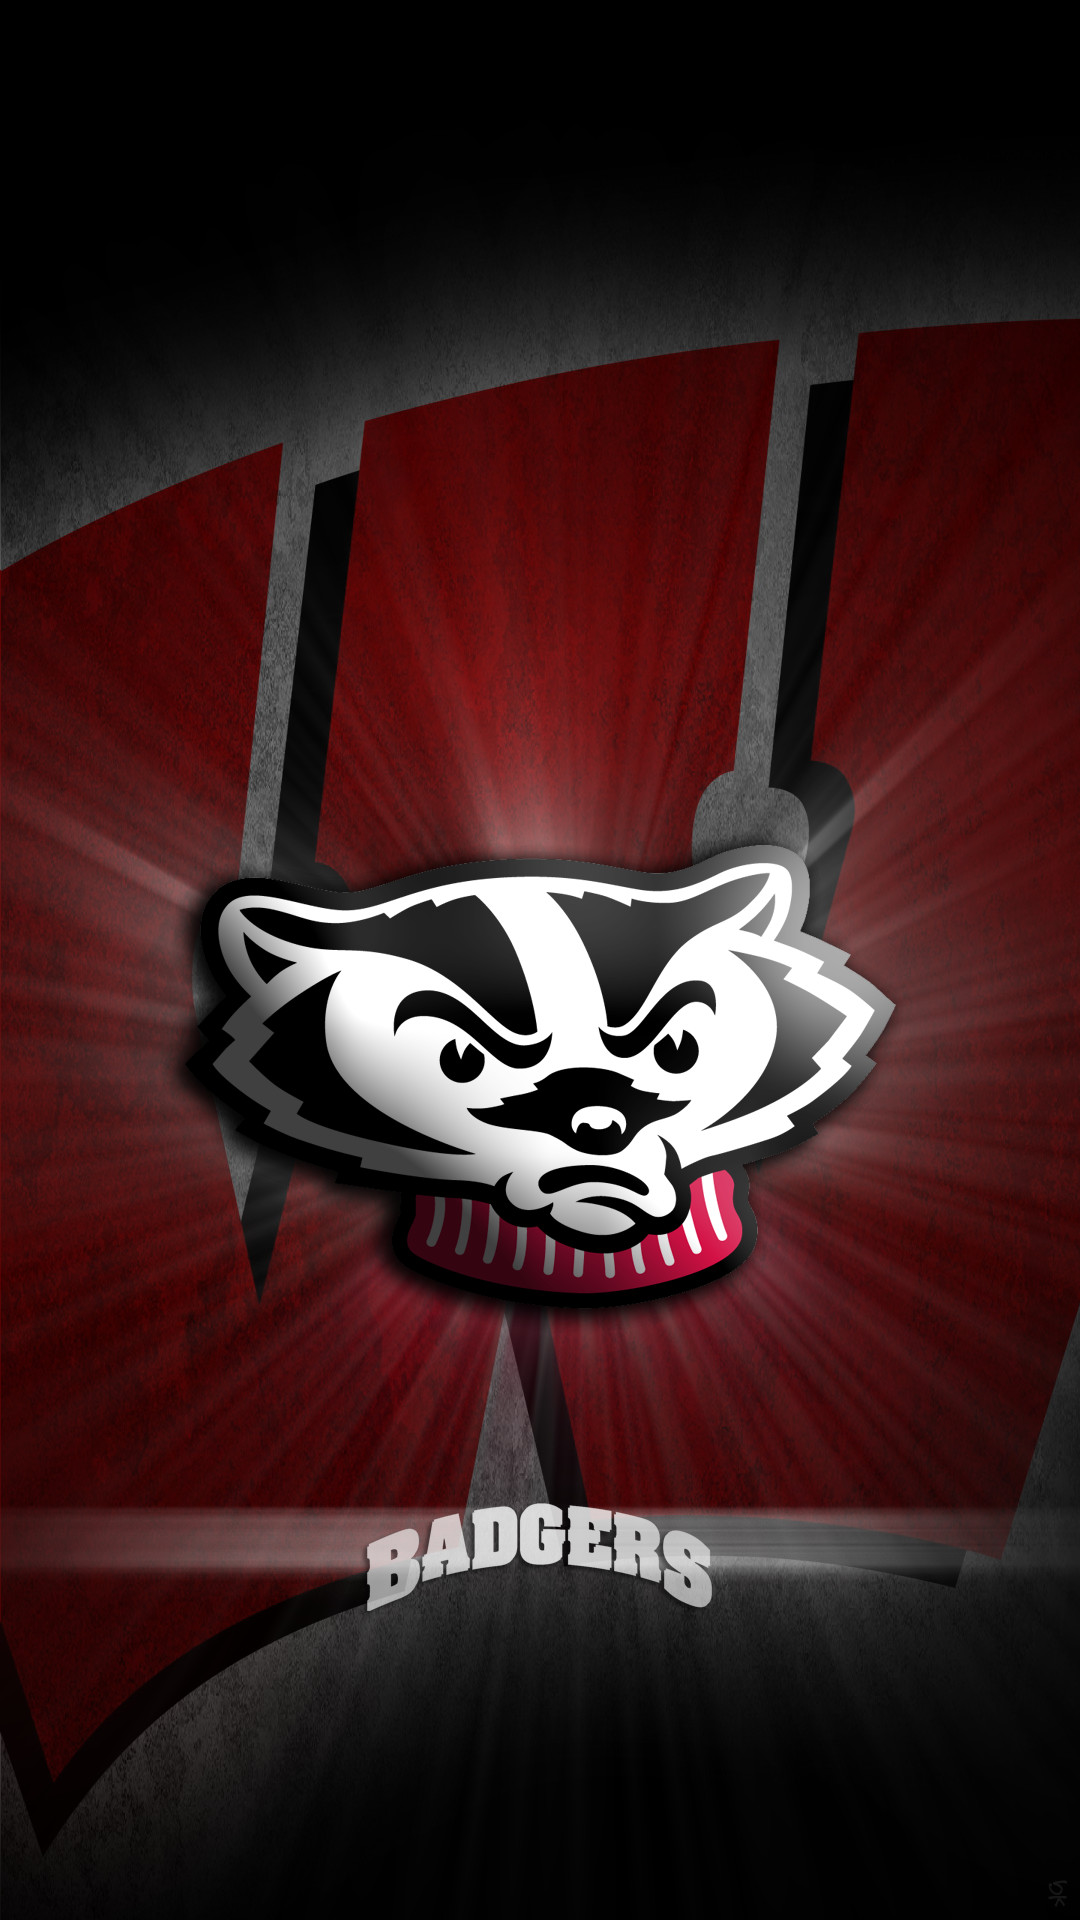 Res: 1080x1920, Wisconsin Badgers Wallpaper For Android   Wallpaper for Mobile